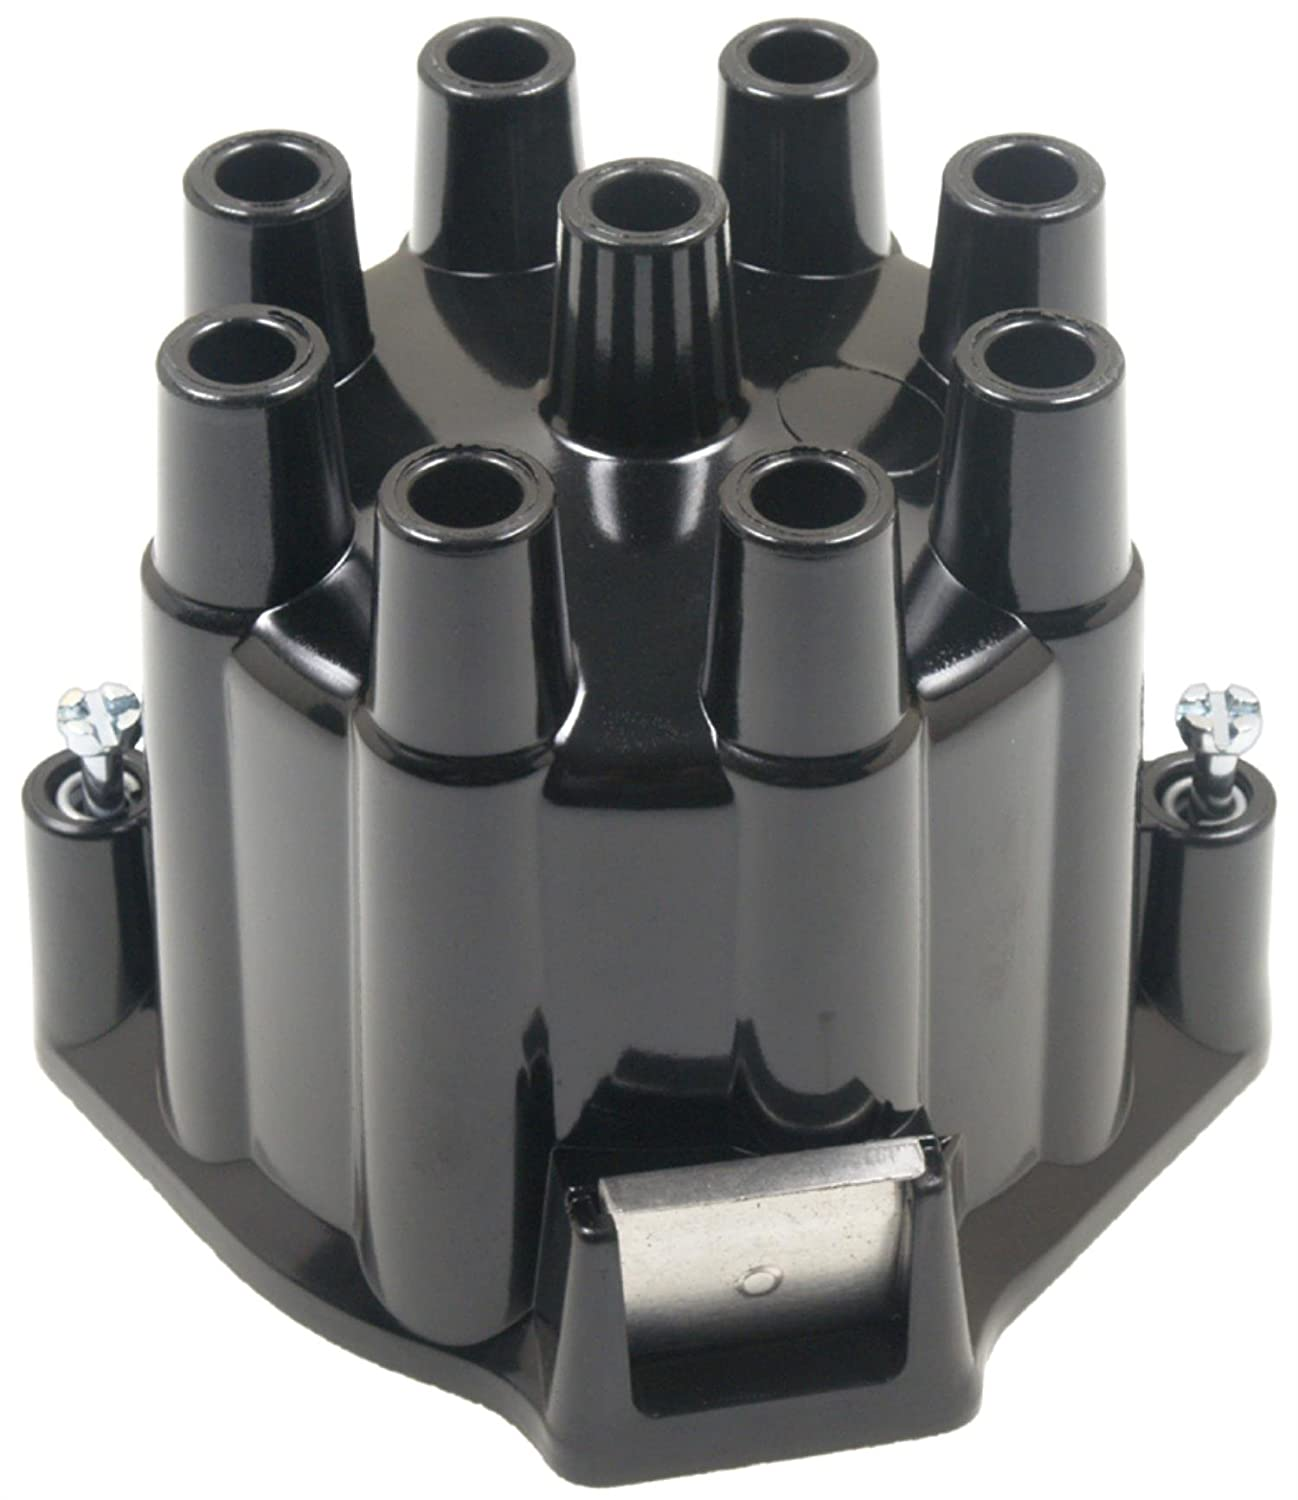 ACDelco C349 Professional Ignition Distributor Cap